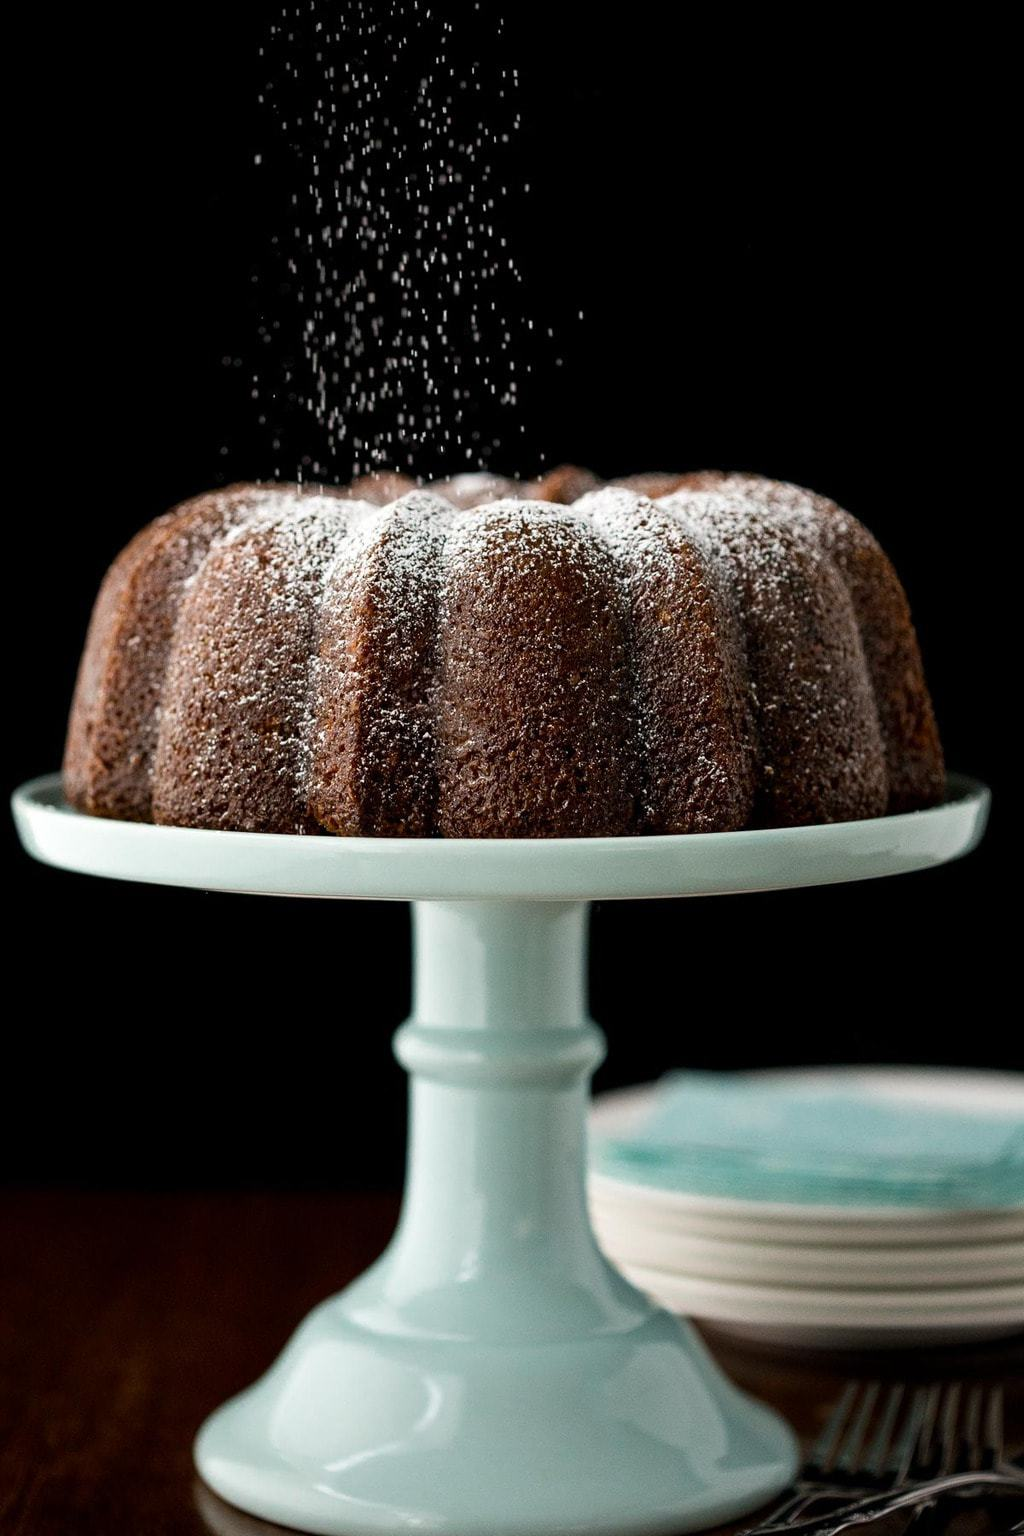 Vertical photo of Easy Carrot Bundt Cake on a turquoise cake stand being showered with powdered sugar against a black background.